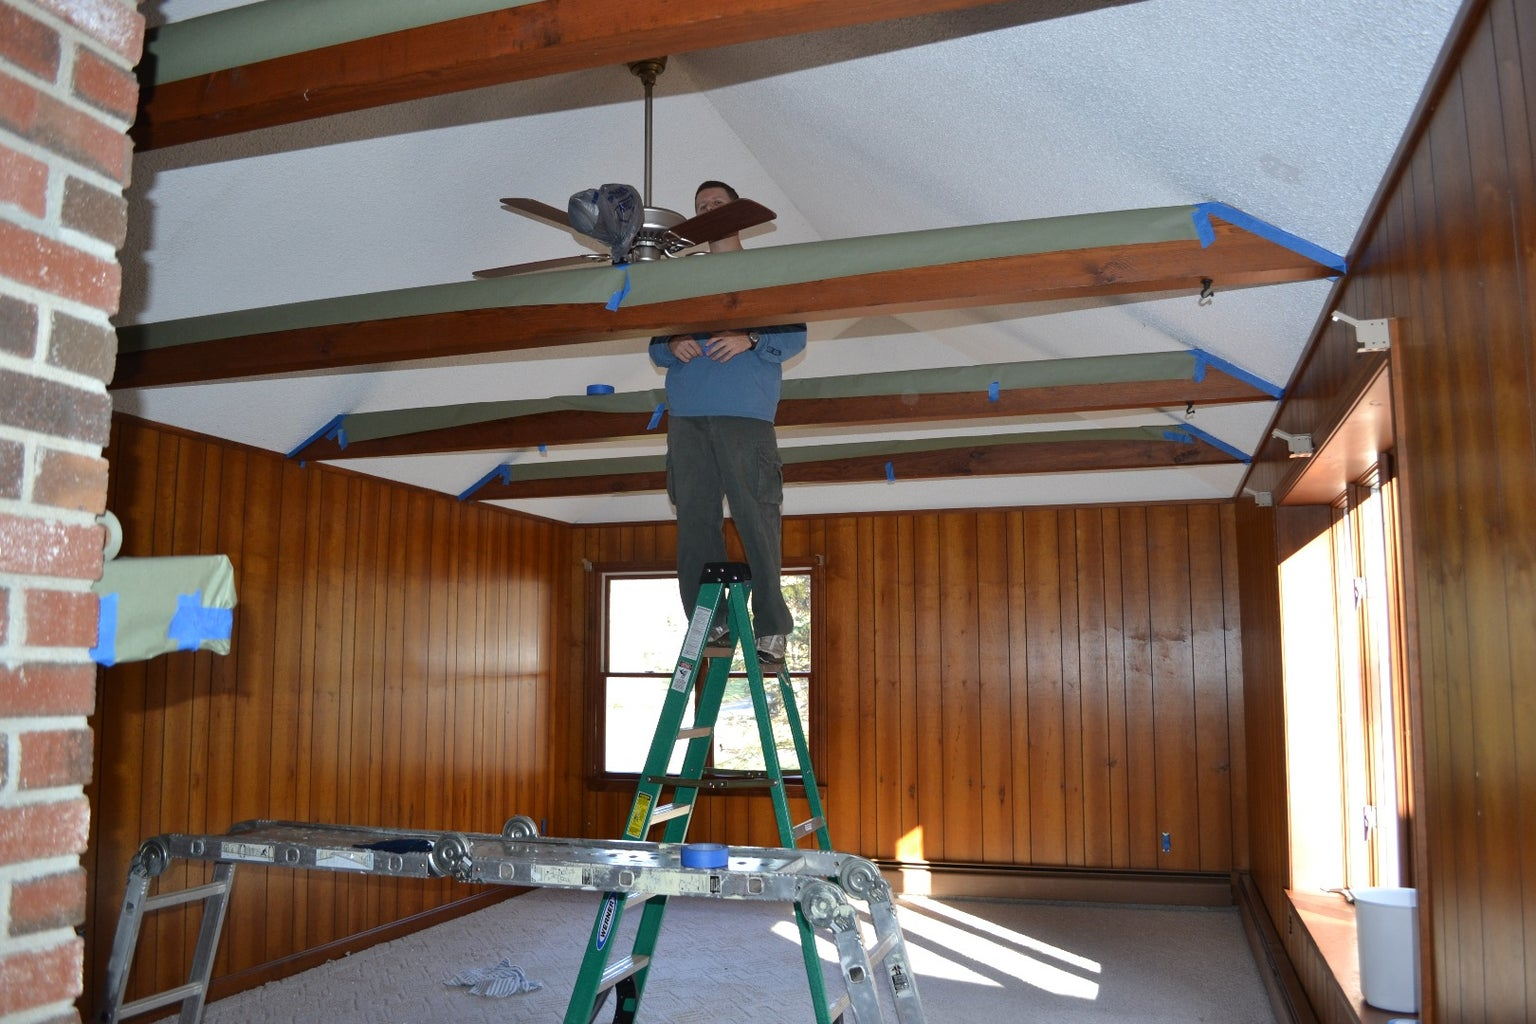 Covering Wood Paneling (Family Room Renovation)